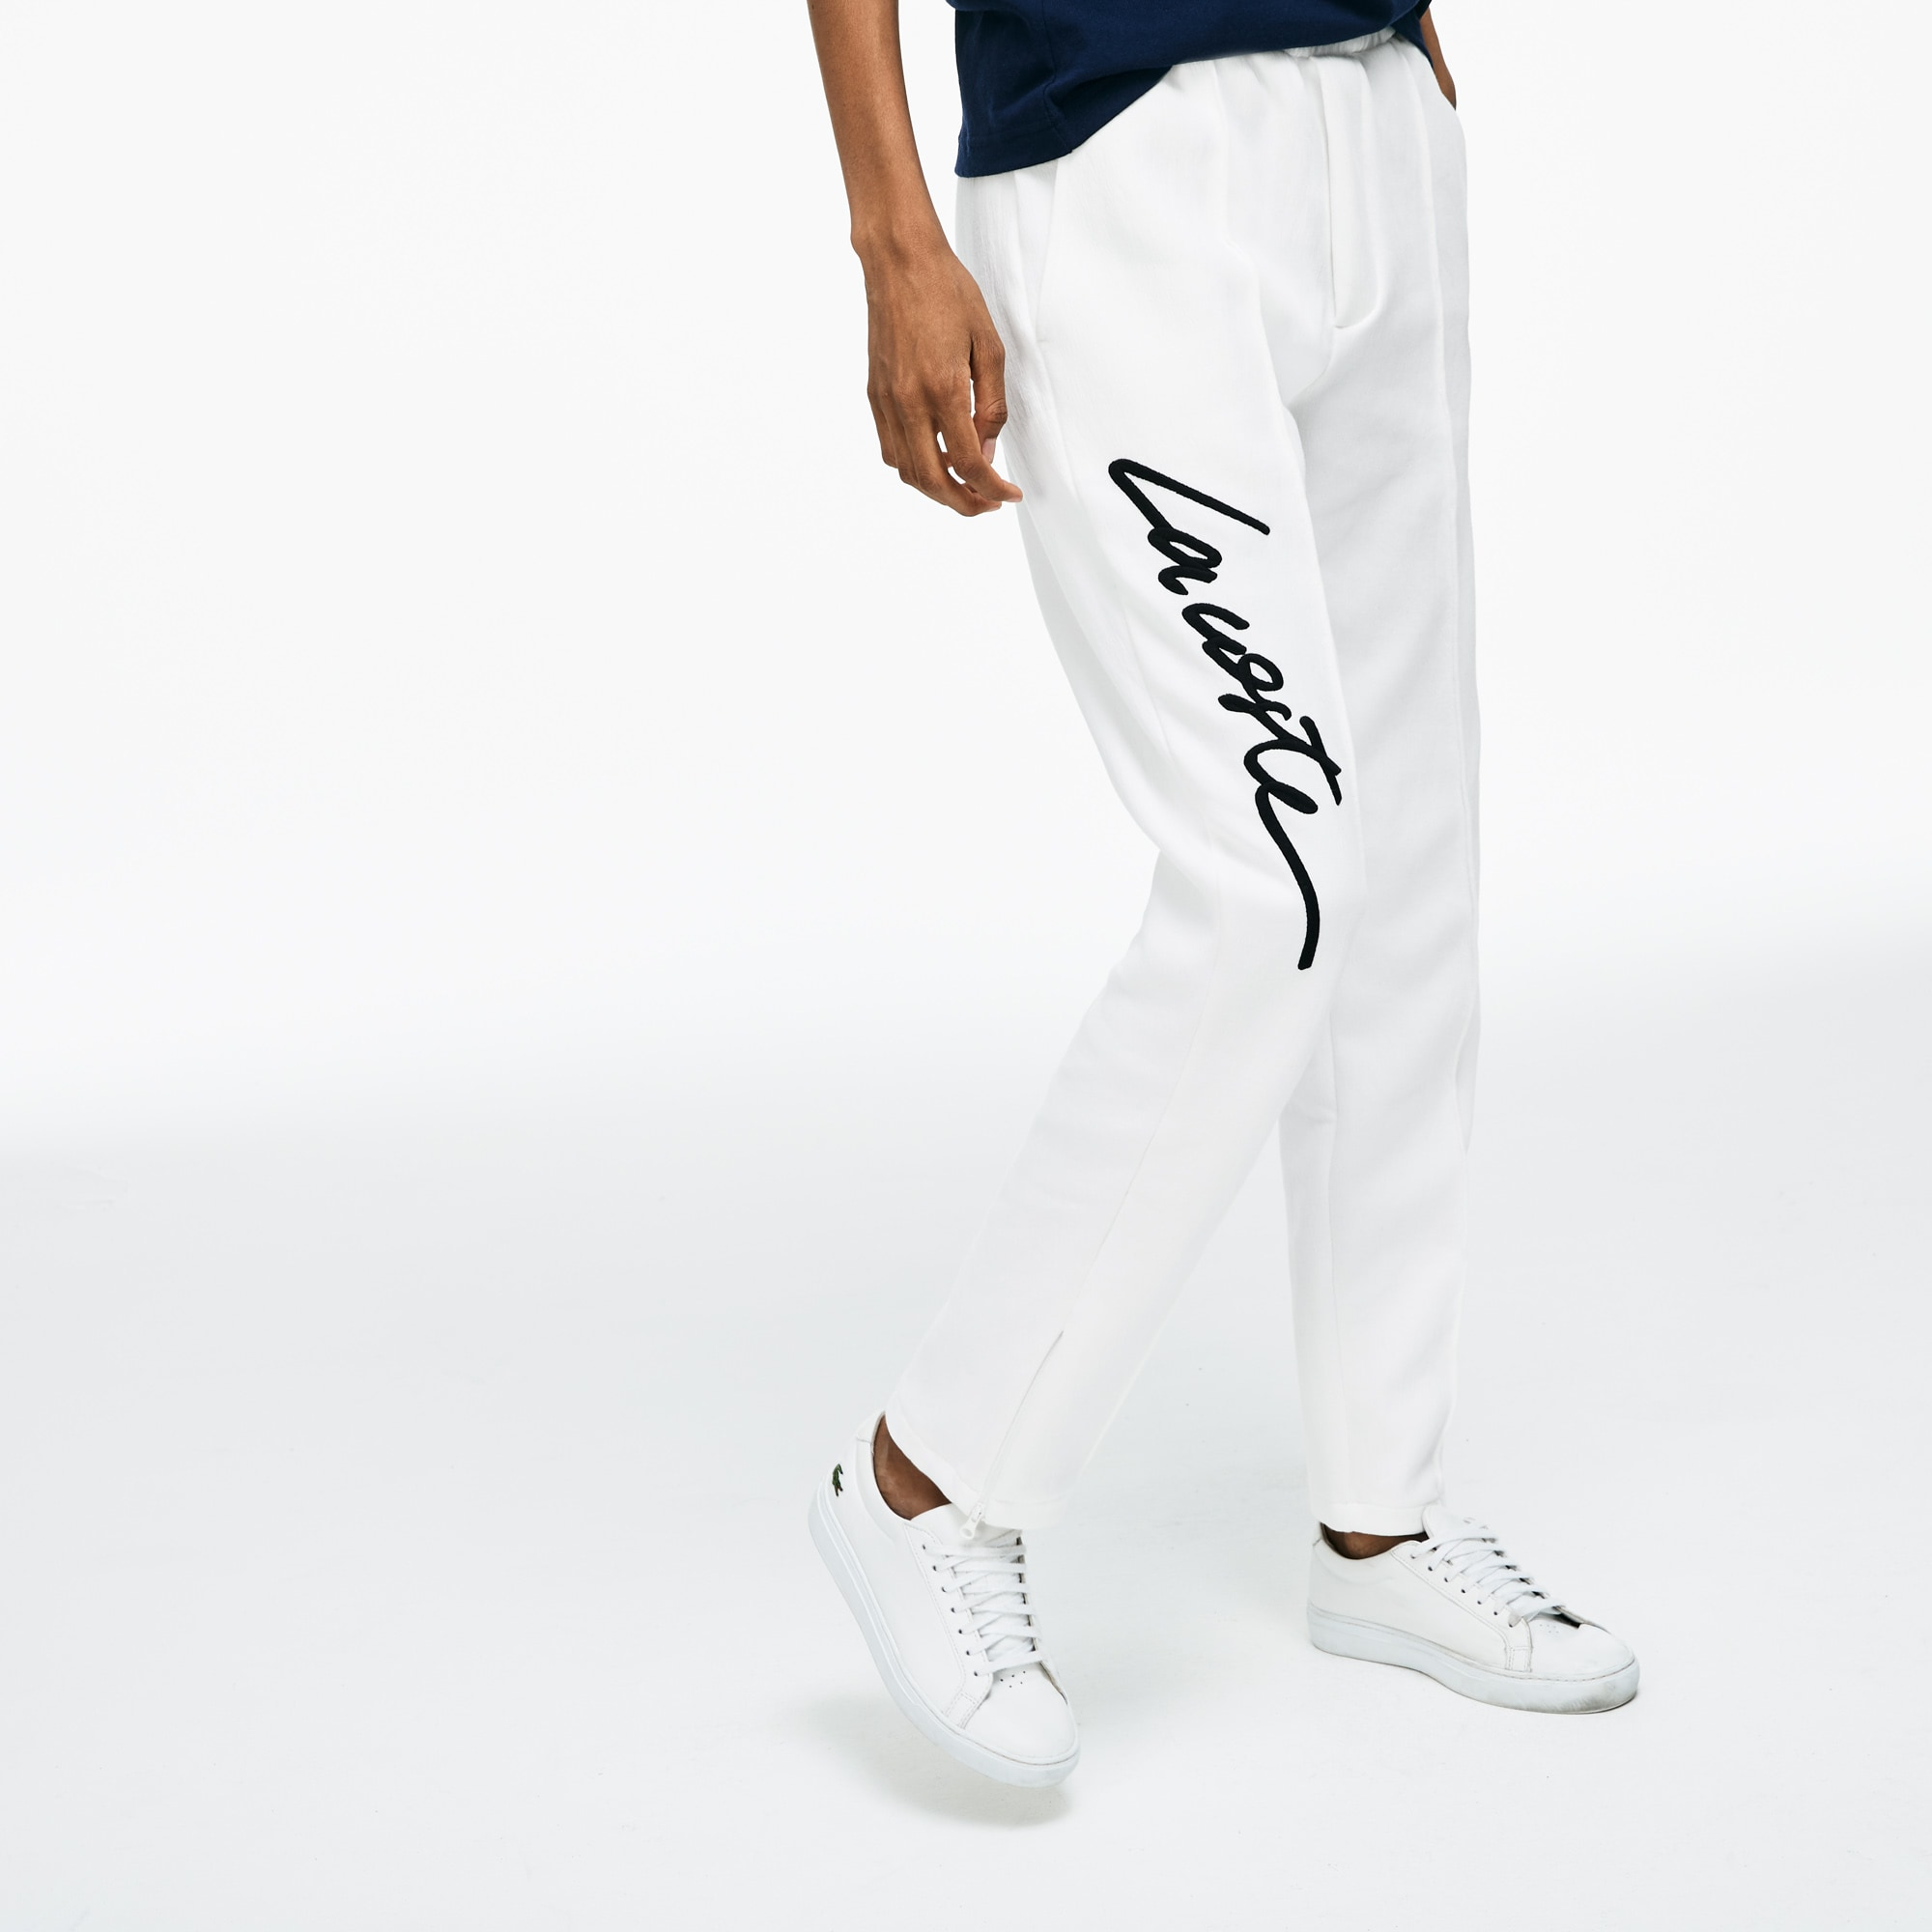 Unisex LIVE Embroidered Fleece Urban Jogging Pants